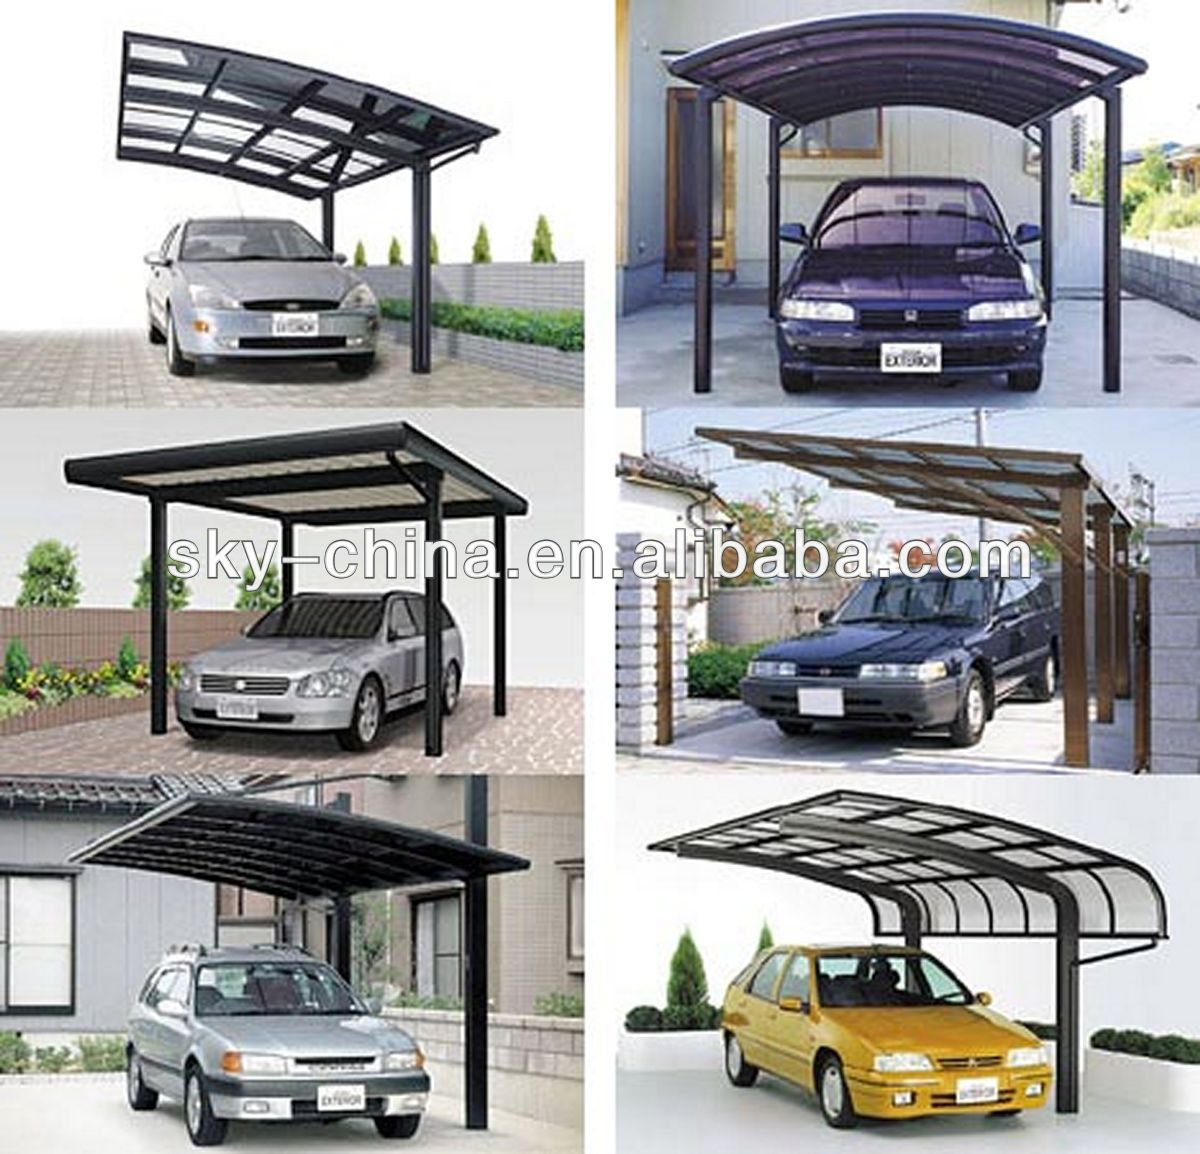 100% Anti-uv Aluminum Carports Garages With Polycarbonate Roof For Car Shelter - Buy Polycarbonate CarportsCarport Garage WoodenInflatable Carport Garage ...  sc 1 st  Alibaba & 100% Anti-uv Aluminum Carports Garages With Polycarbonate Roof For ... memphite.com